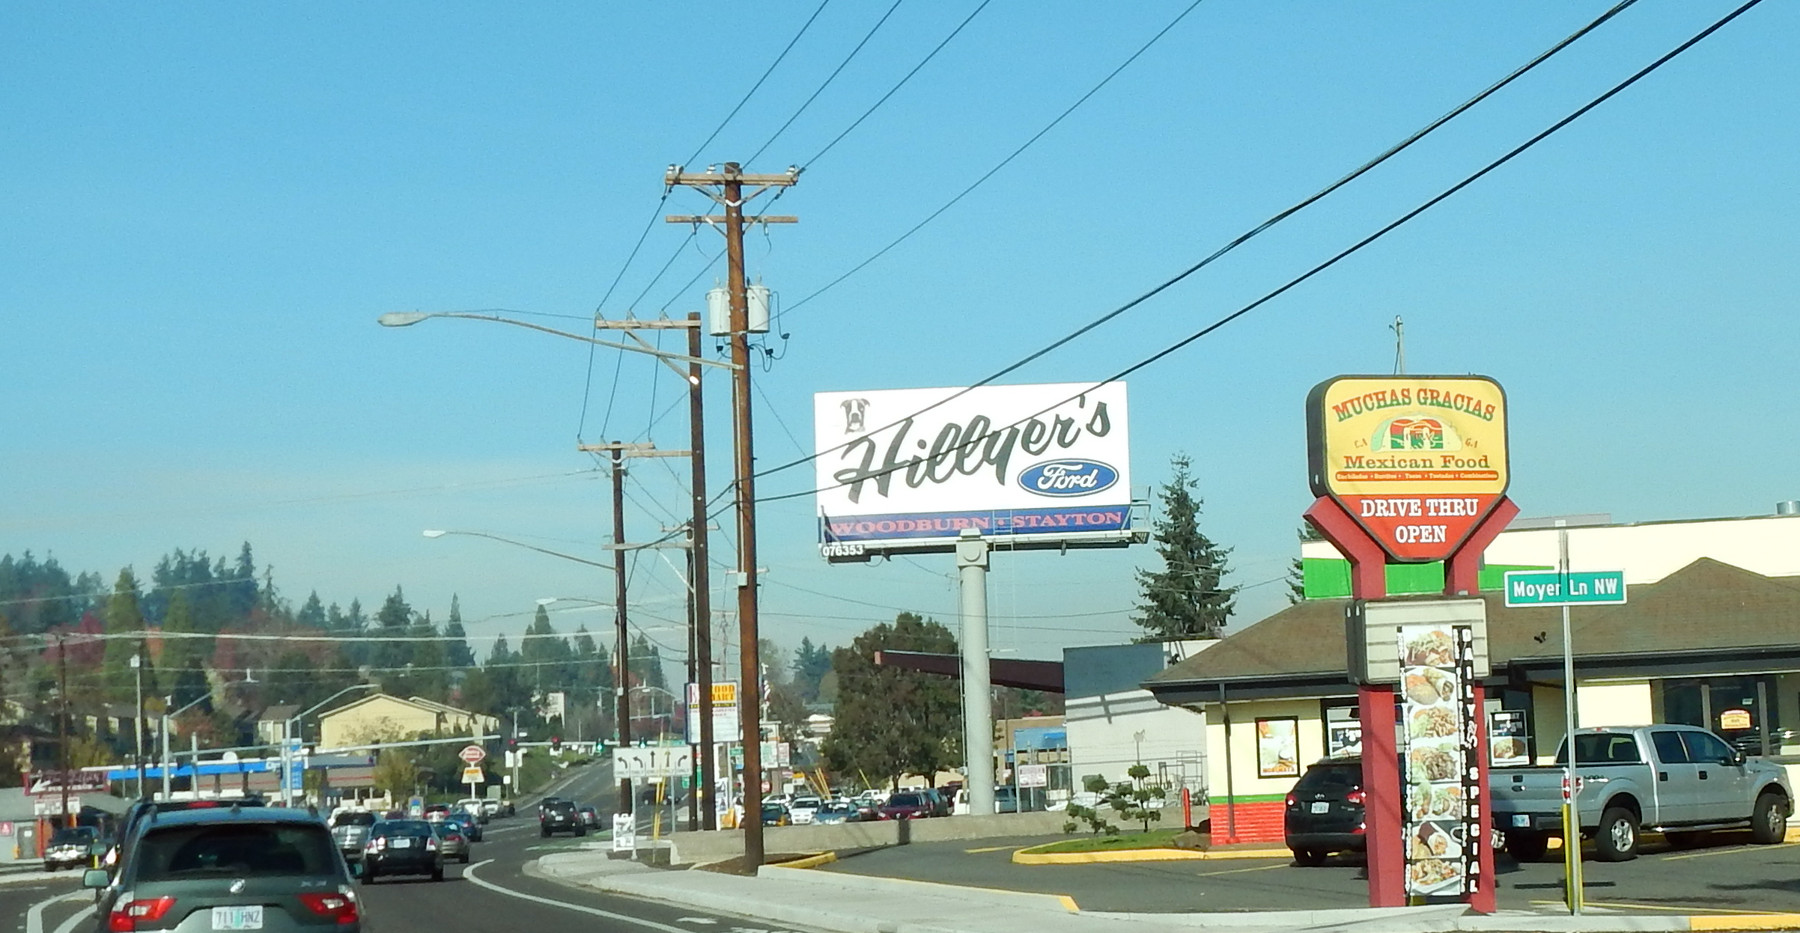 Hillyer's Mid-City Ford